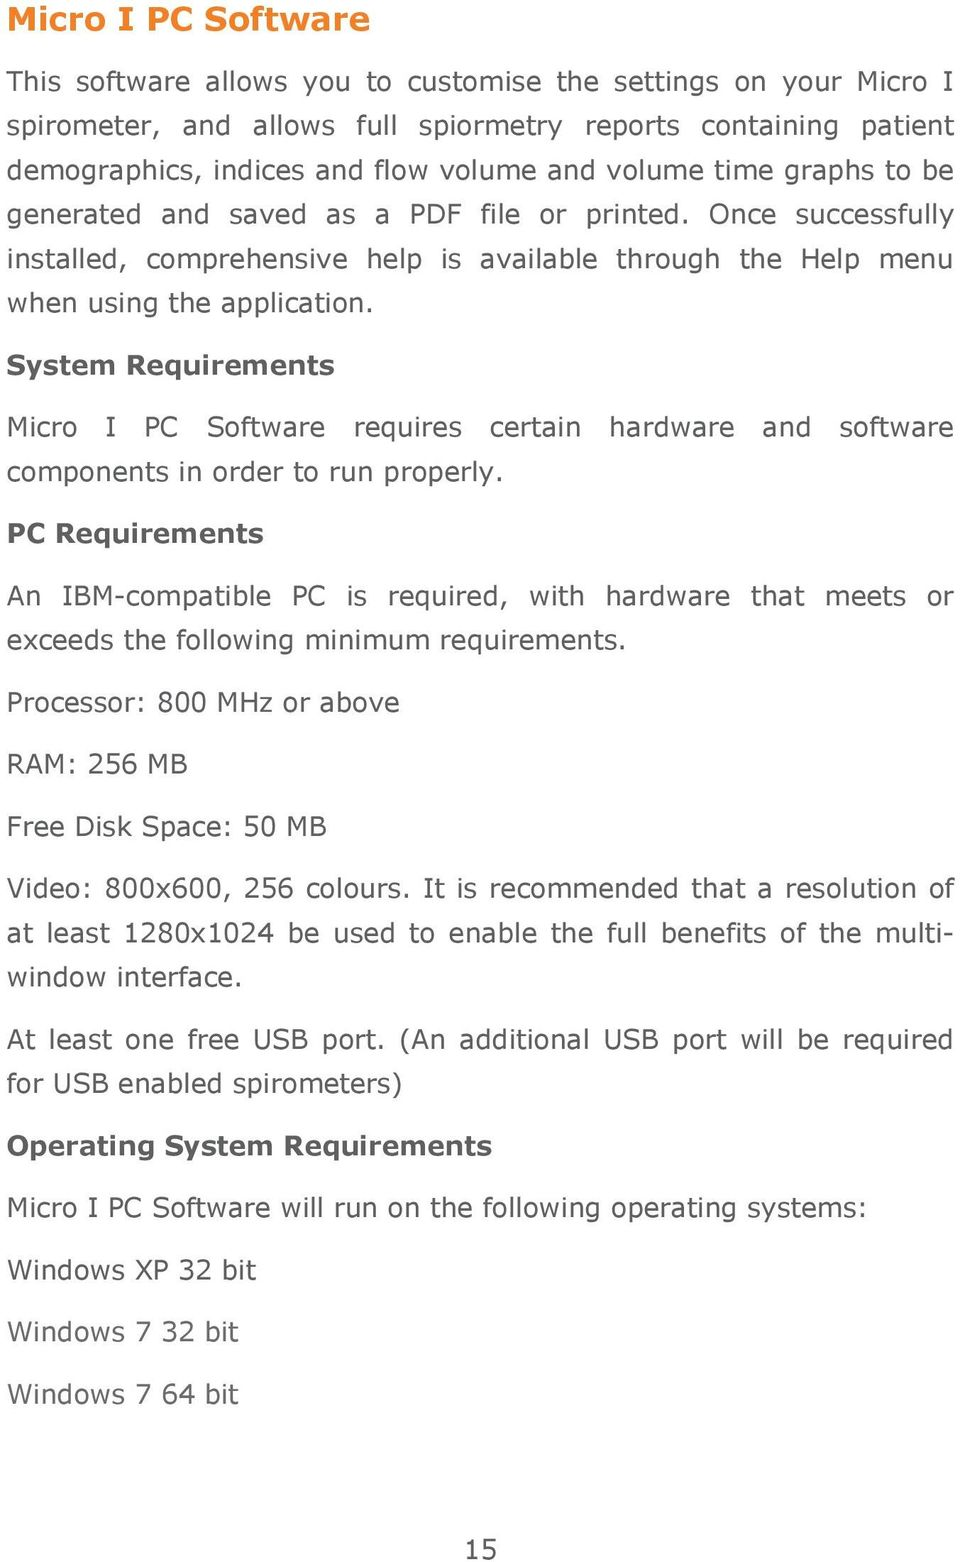 System Requirements Micro I PC Software requires certain hardware and software components in order to run properly.